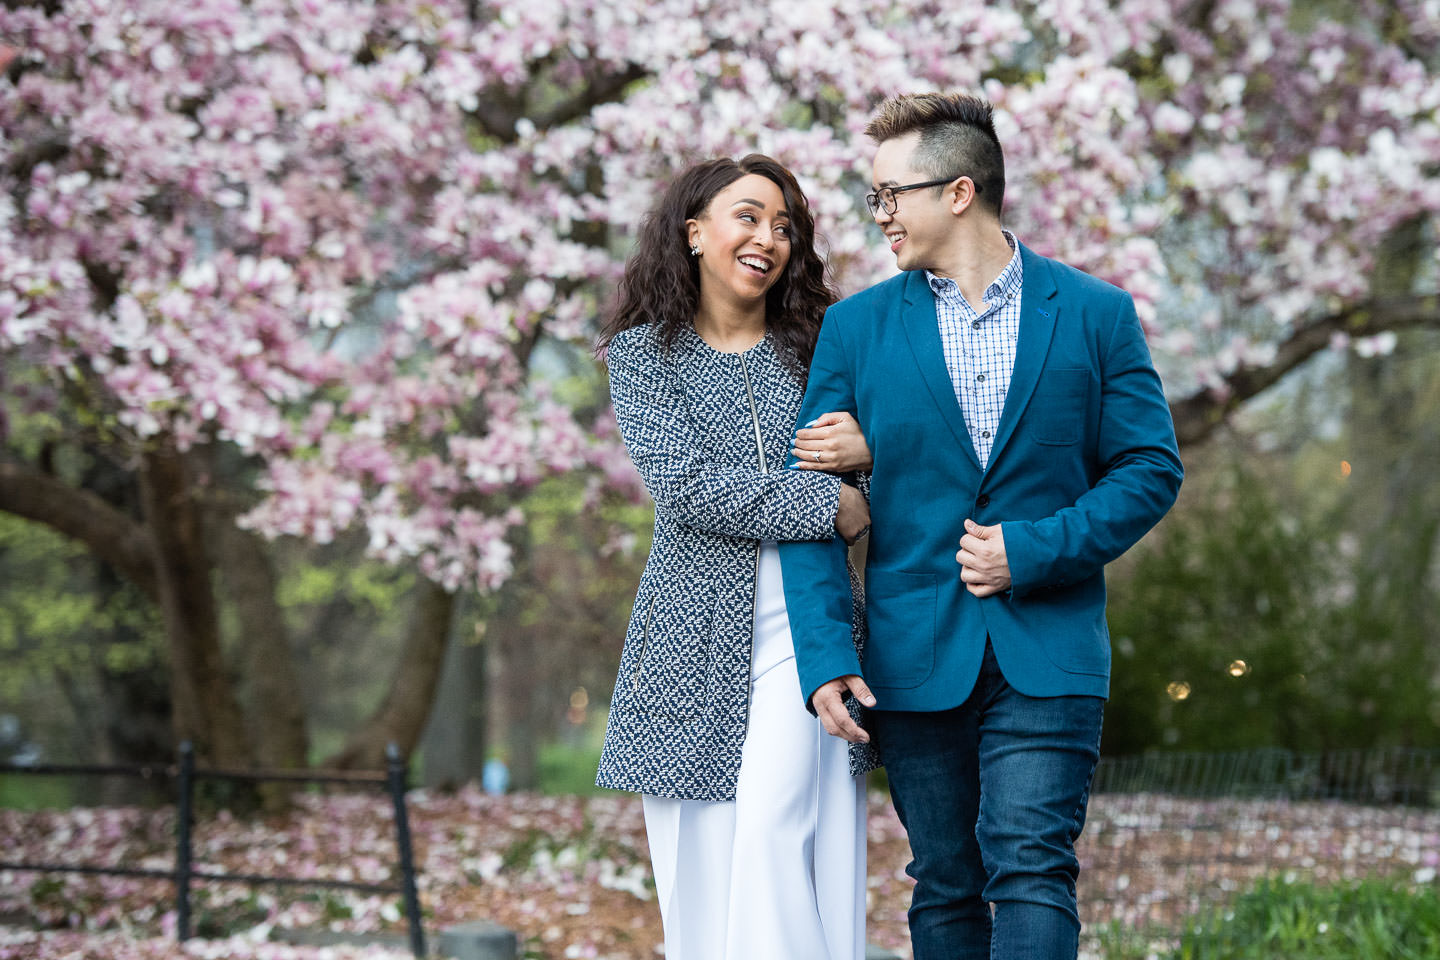 engagement session during spring in central park with japanese cherry blossoms